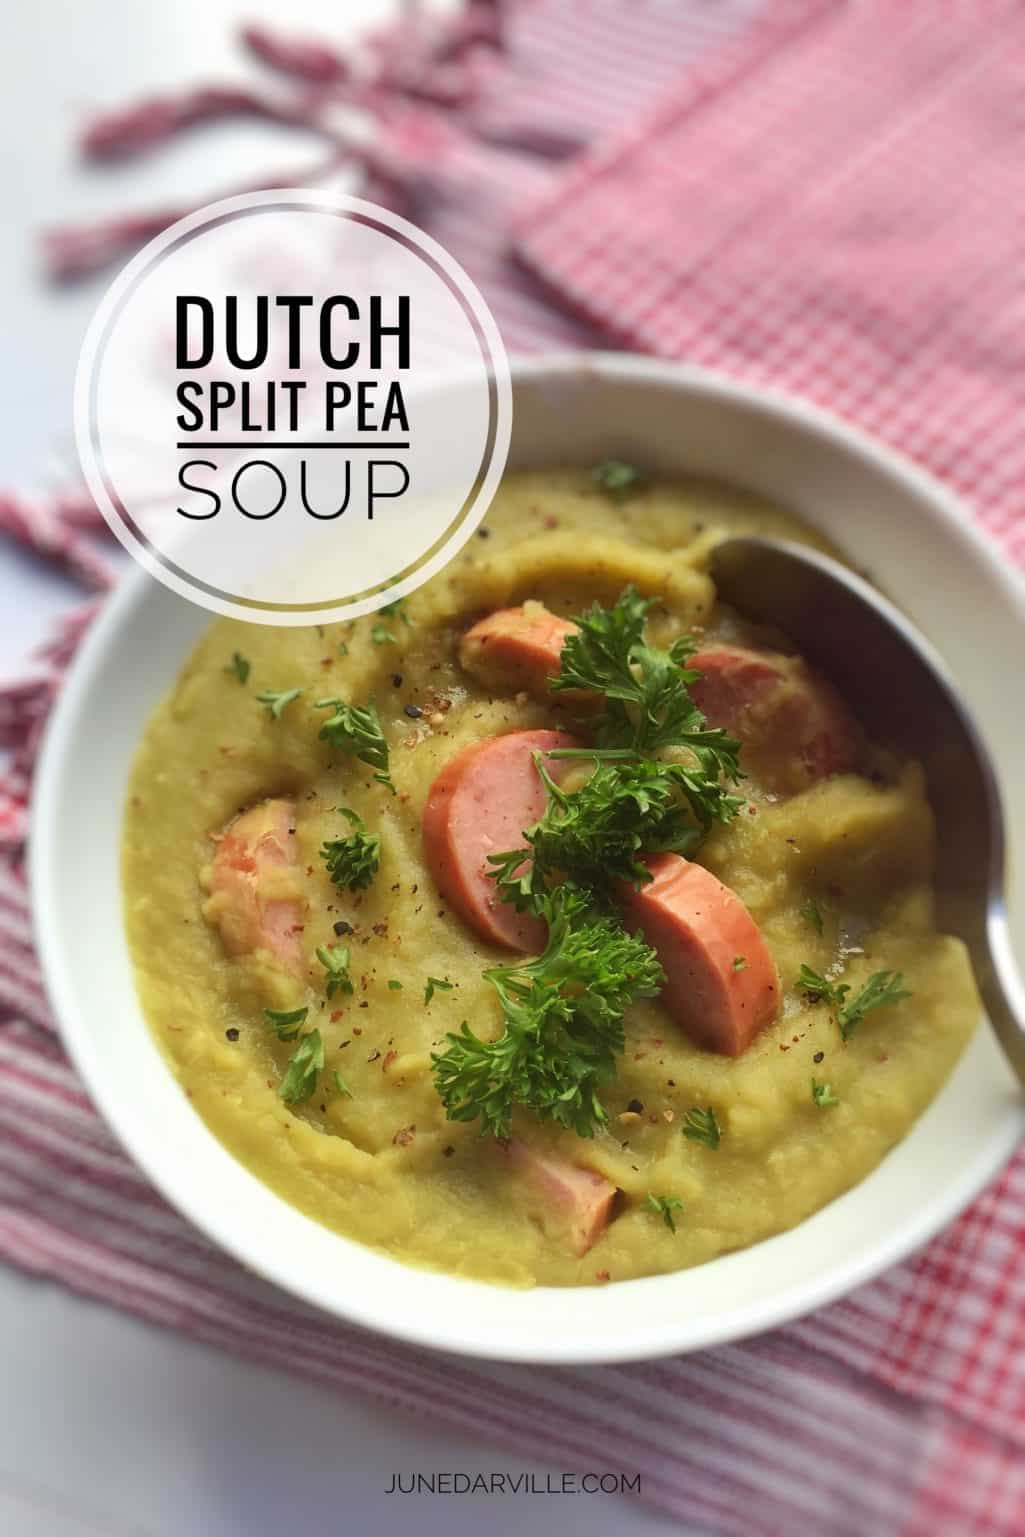 Ever heard of Dutch erwtensoep? This hearty split pea soup recipe is the perfect meal on a cold evening... With rye bread and butter!